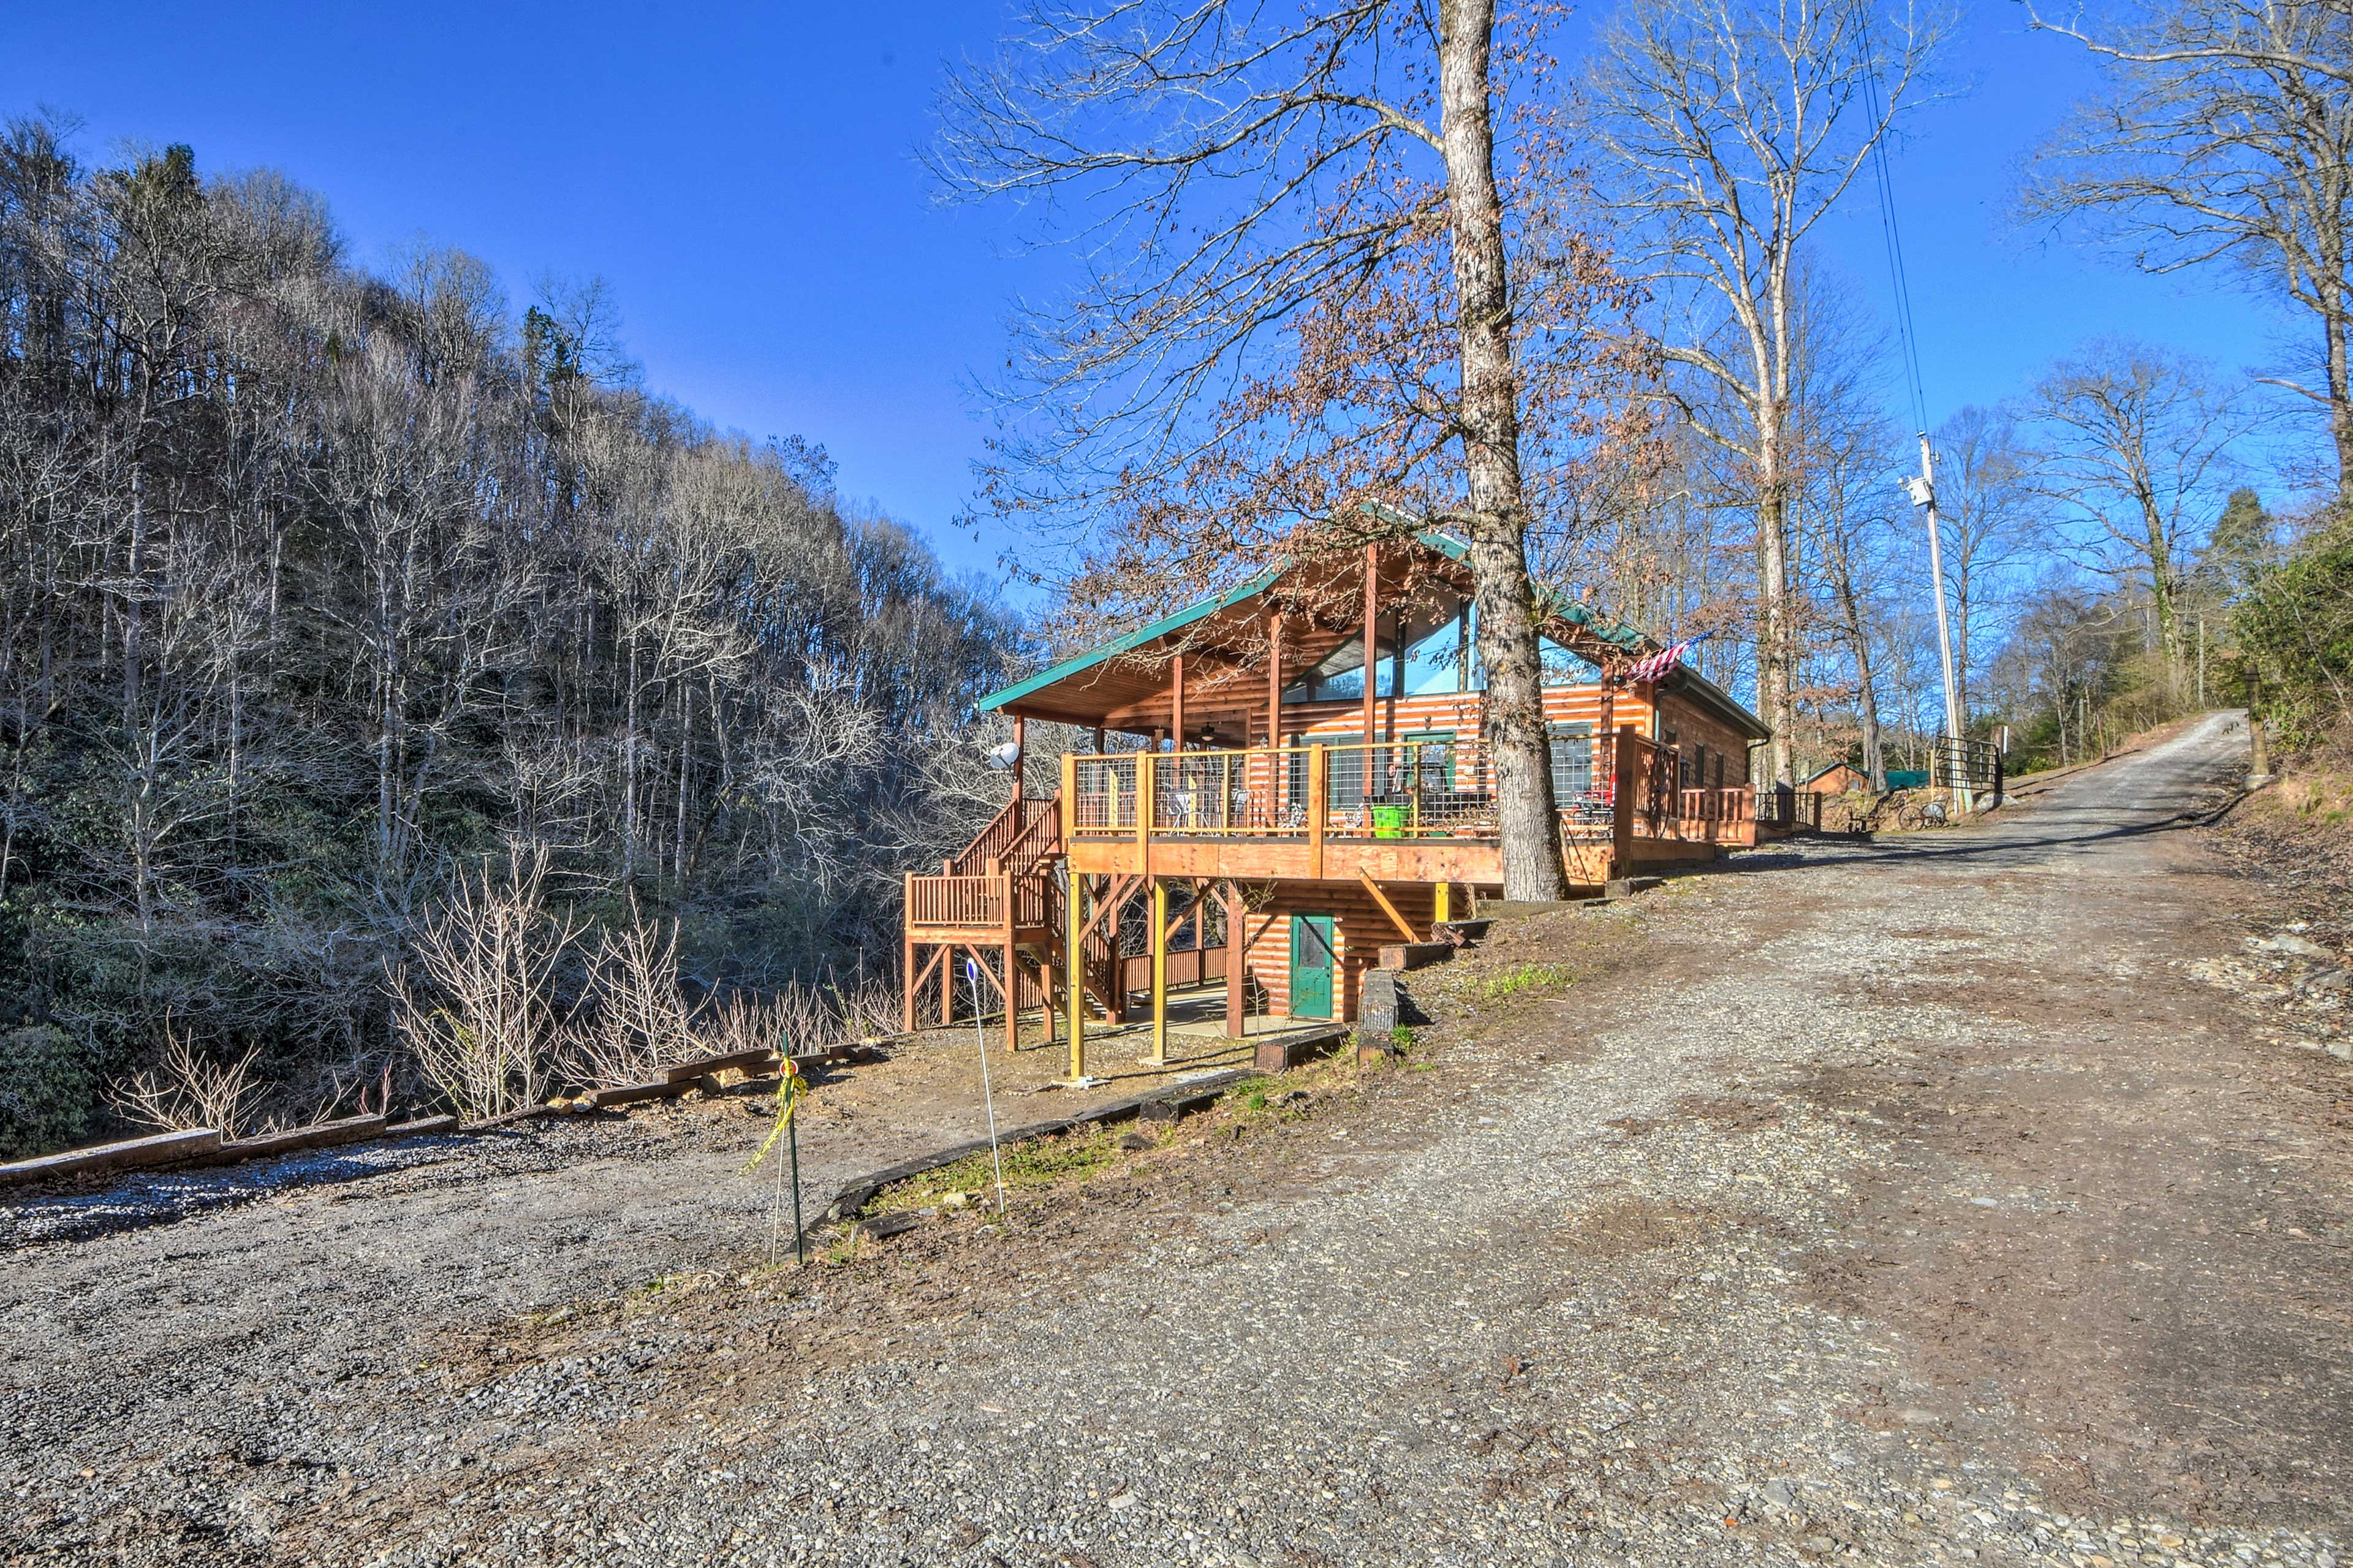 Leave your worries at the front door of this one-of-a-kind riverfront cabin.